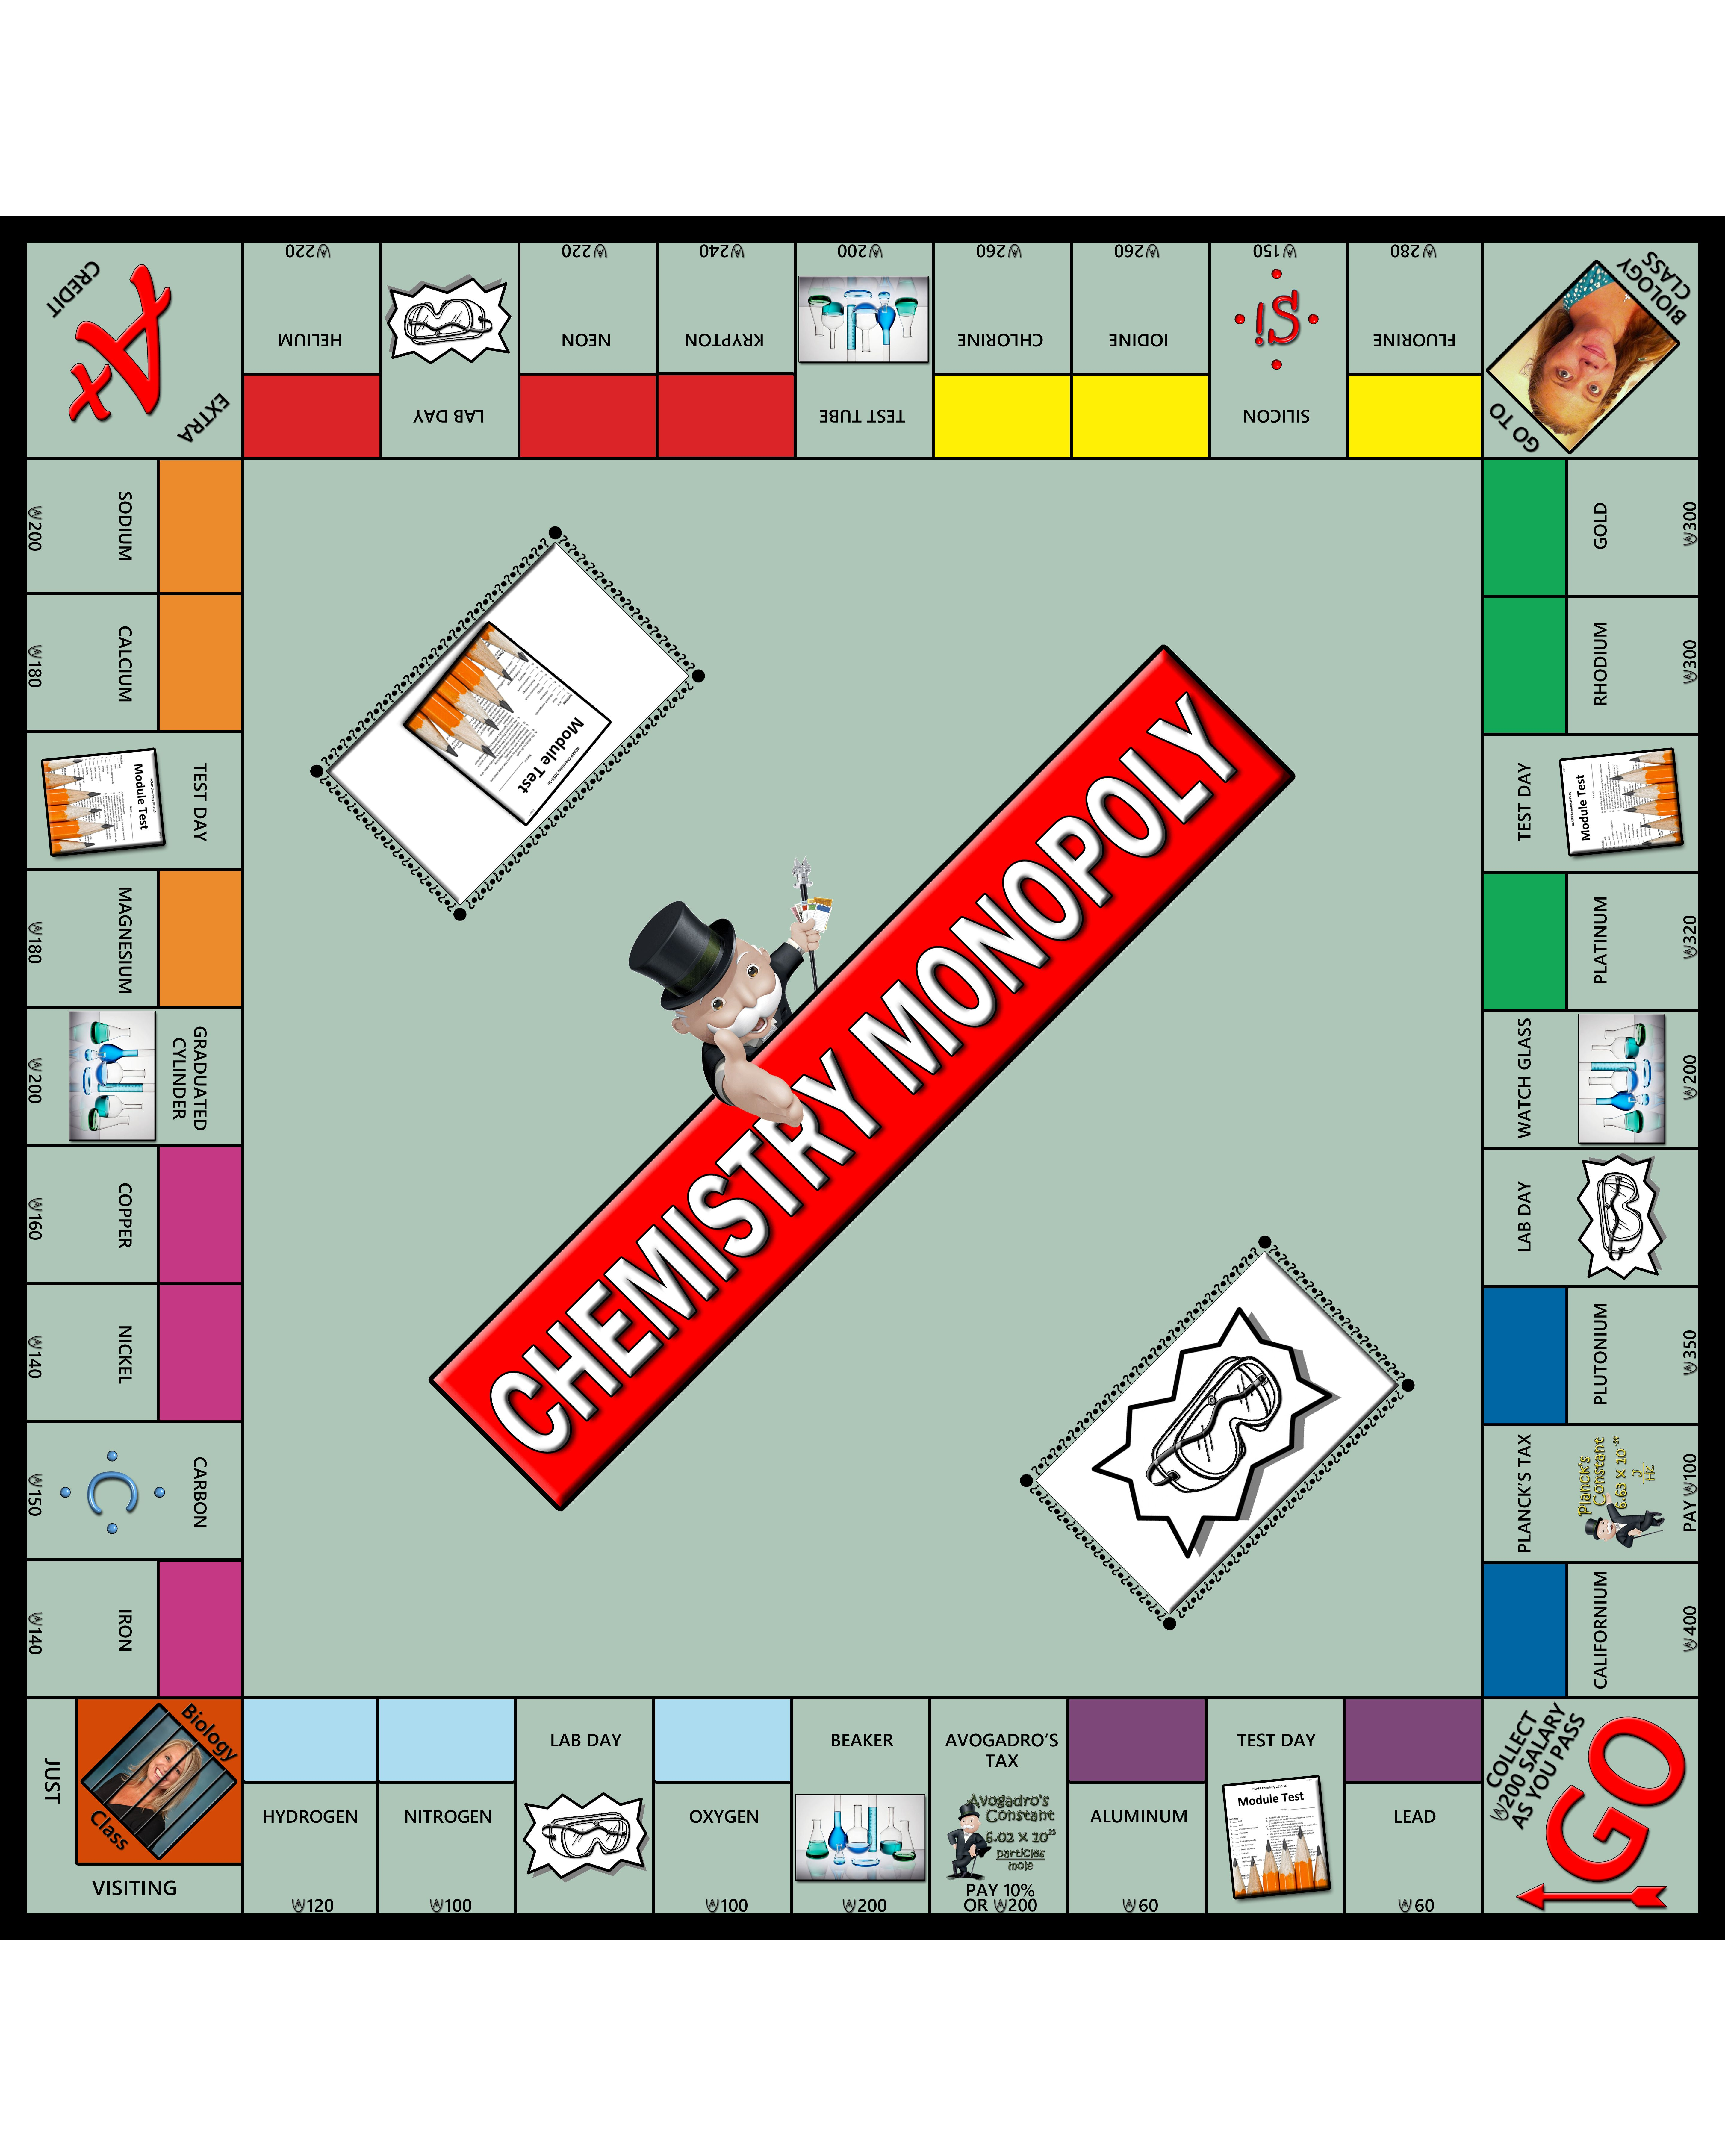 I am so excited to share this chemistry monopoly game with you all i am so excited to share this chemistry monopoly game with you alli am gamestrikefo Images